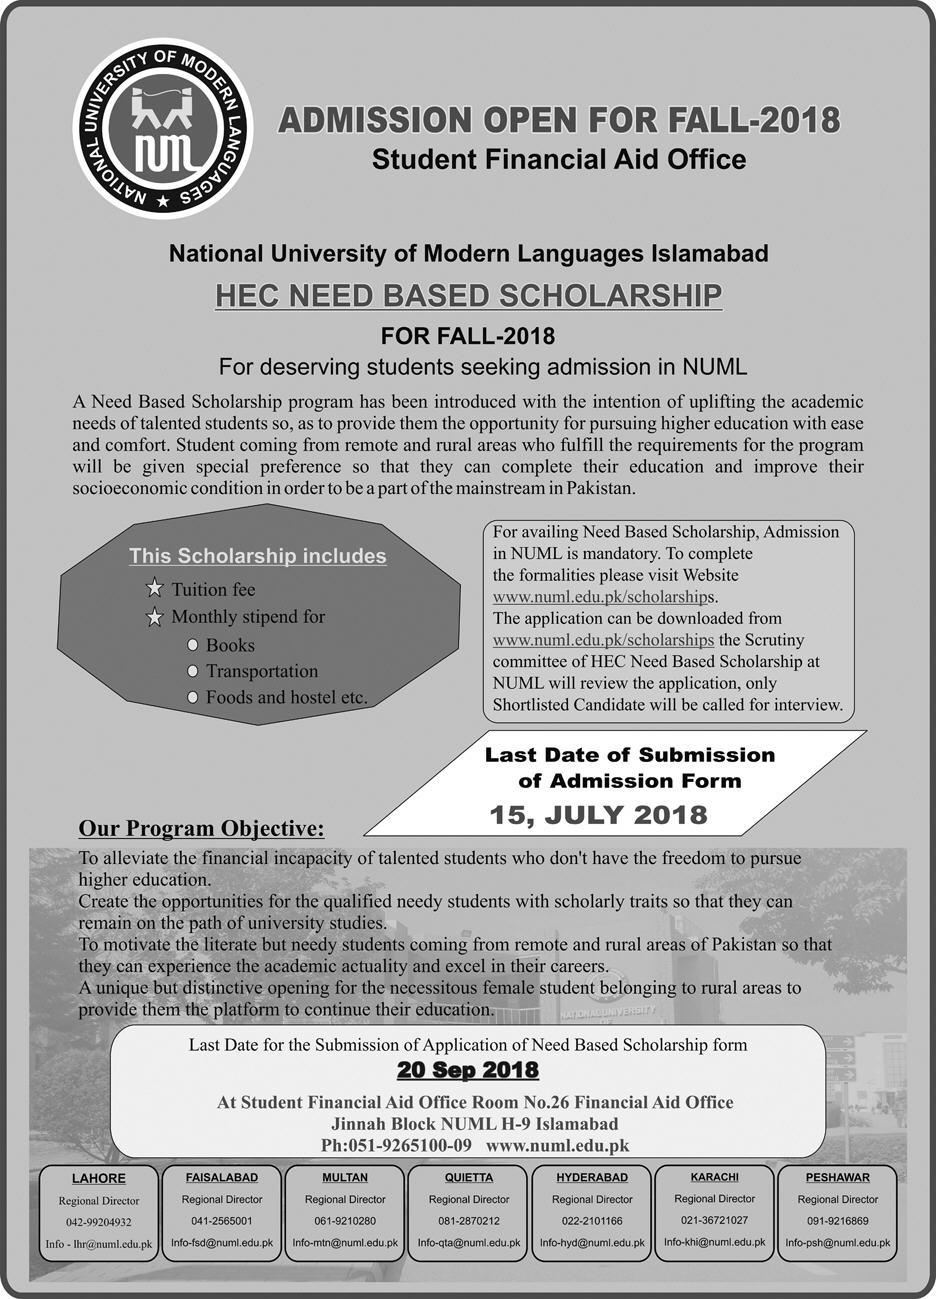 HEC Need Based Scholarship for Students of NUML Fall 2018